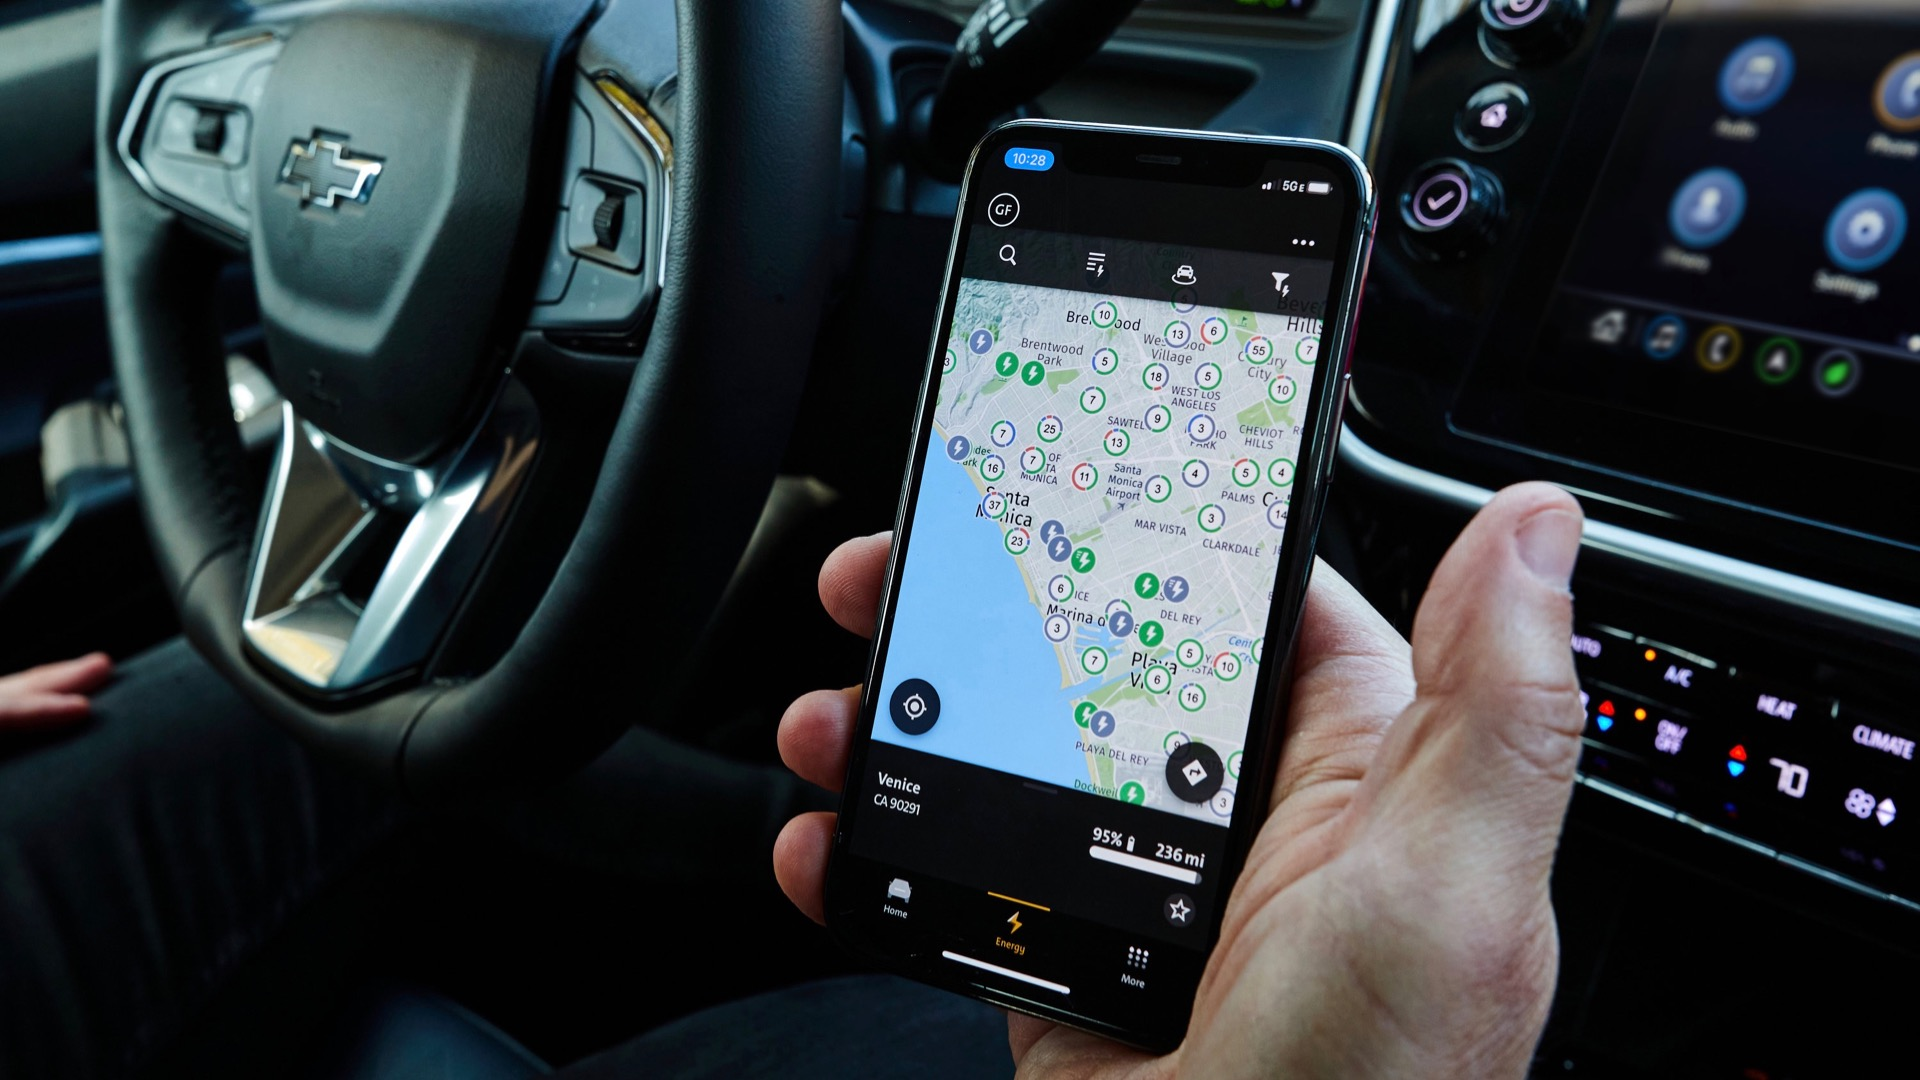 EV charging networks and automakers all want you to use their apps while you drive